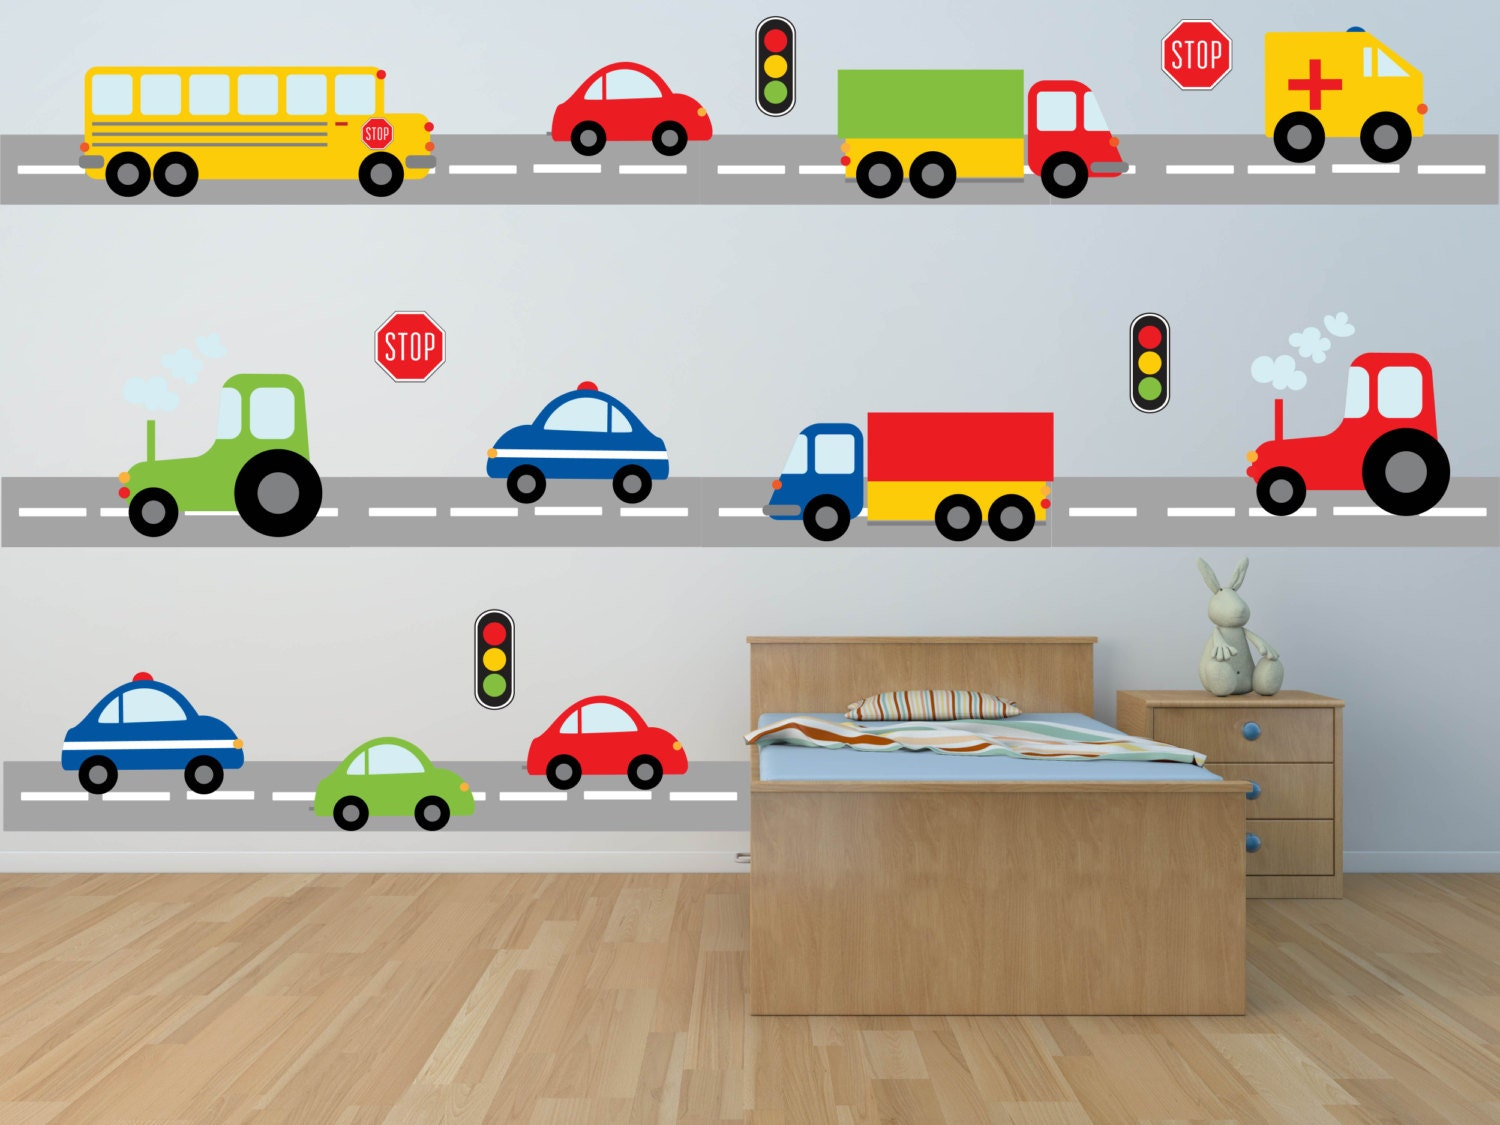 50 Car Themed Bedroom Ideas For Kids Boys Accessories: Truck Wall Decal Construction Wall Decal Car Wall Decal